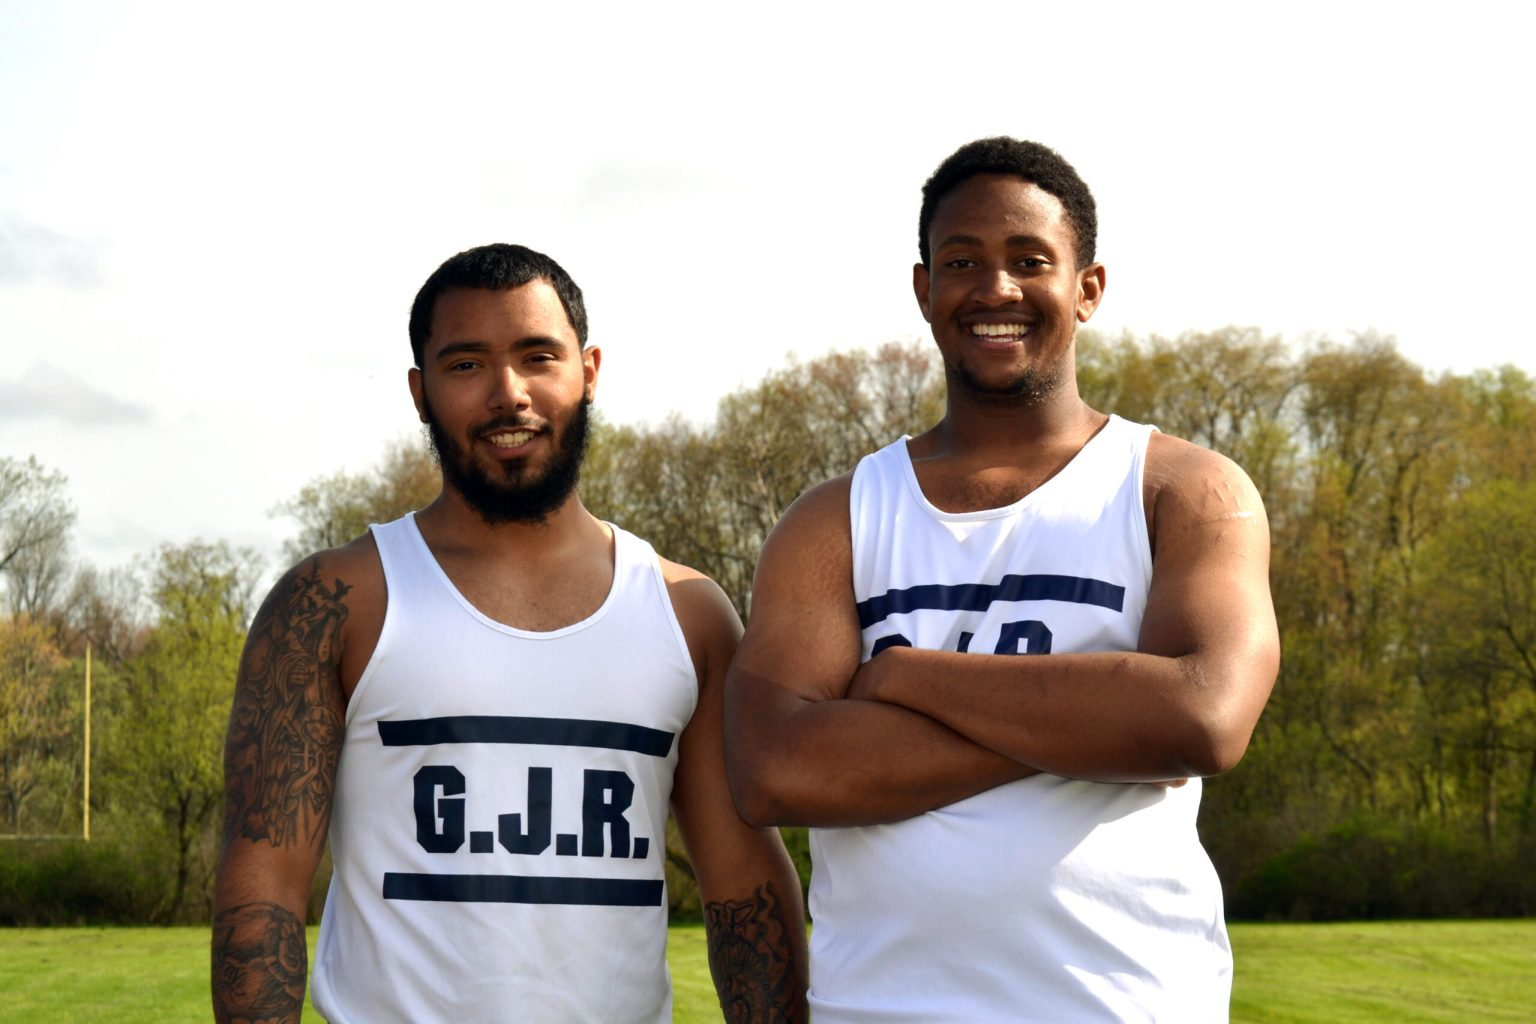 two track and field athletes smiling